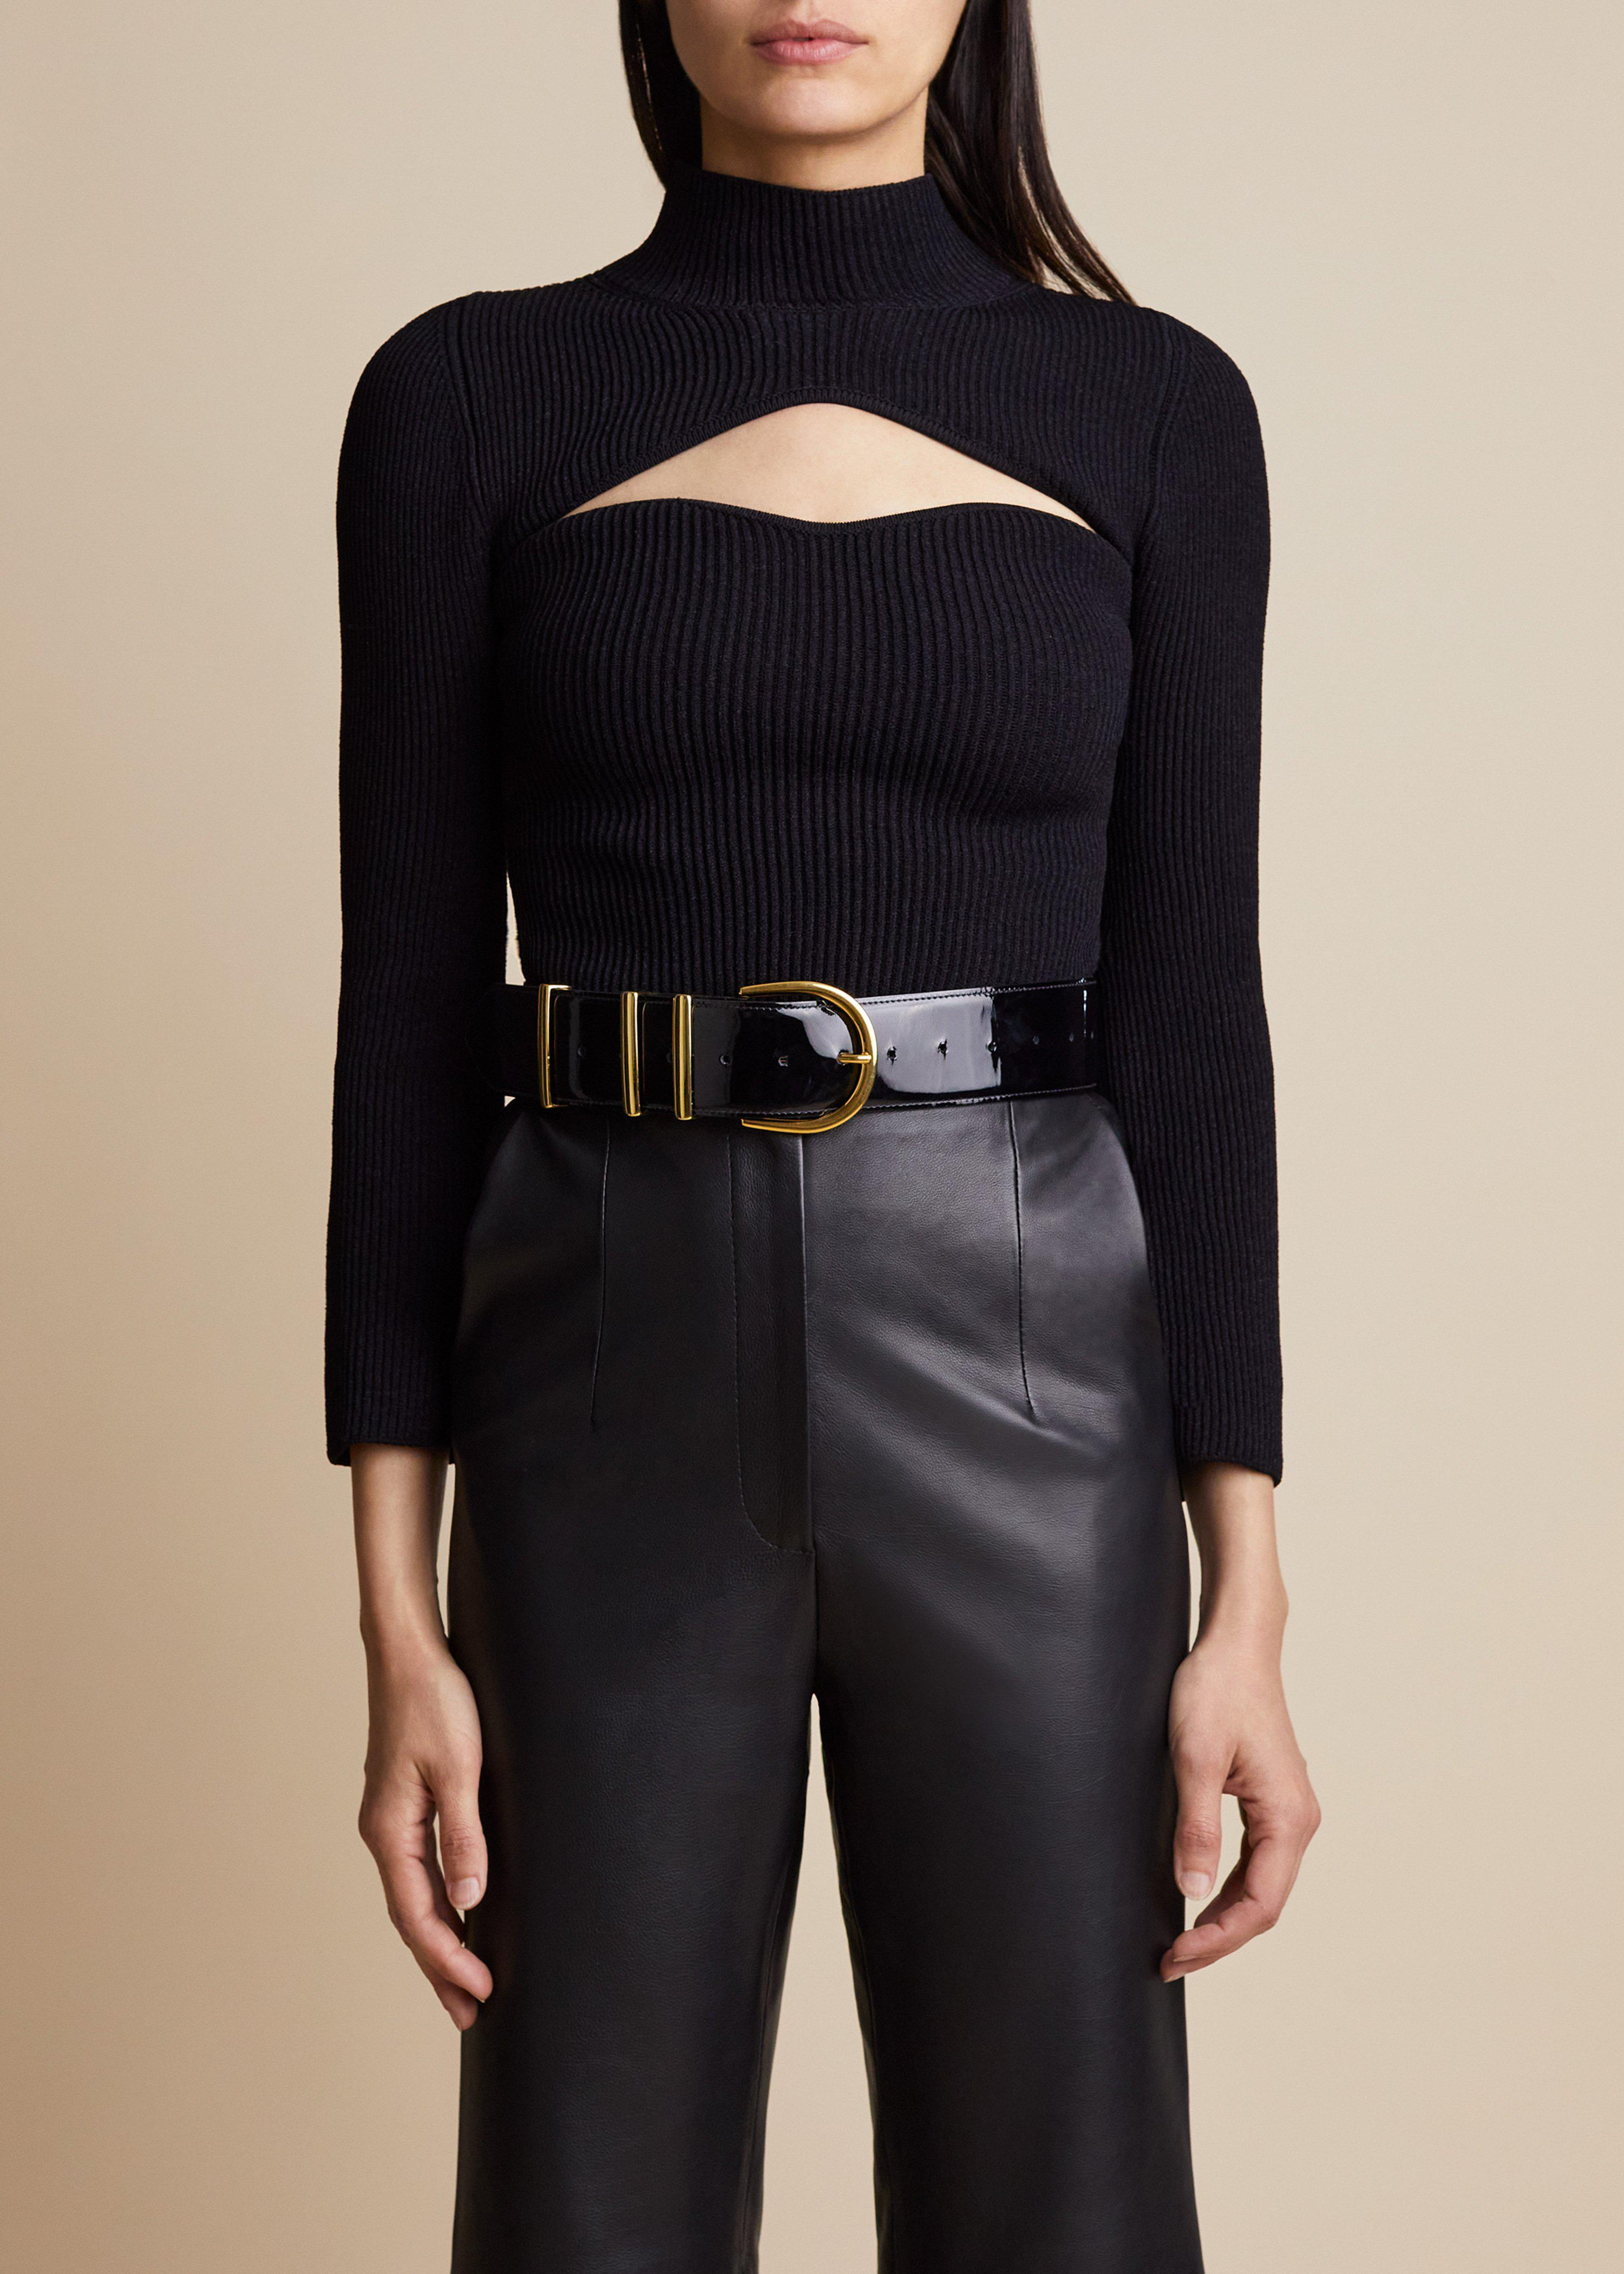 The Angela Top in Black